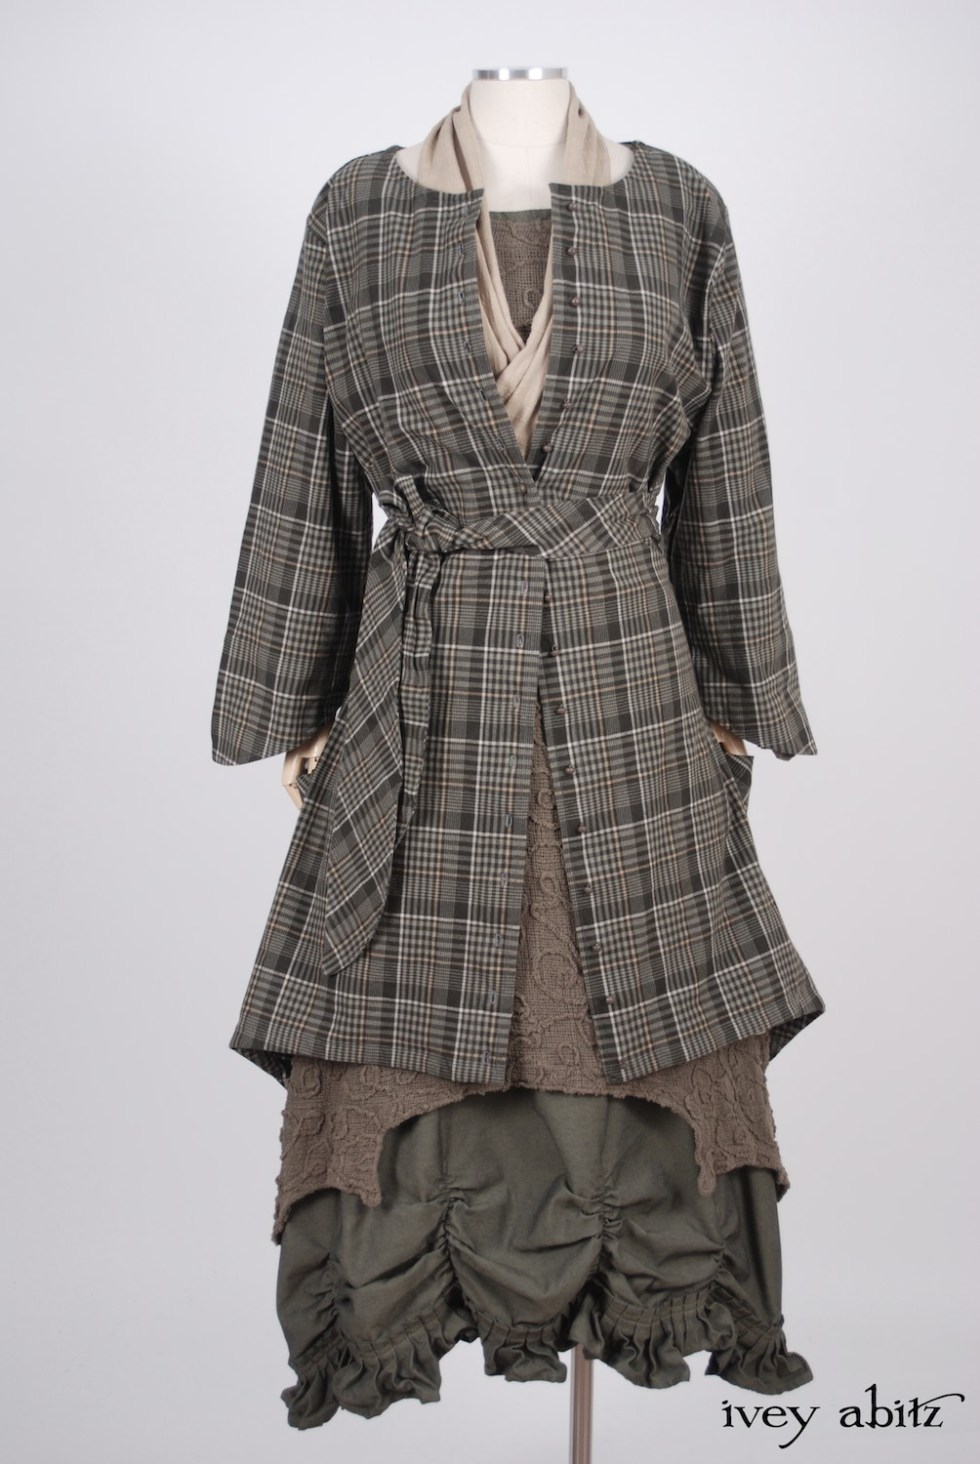 Ivey Abitz - Wildefield Duster Coat in Meadow Stretchy Plaid Cotton, High Water Length - Chittister Dress in Meadow Embroidered Swirl Gauze - Blanchefleur Sash in Blushed Plaid Voile - Edenshire Frock in Morning Meadow Yarn Dyed Cotton, Low Water Length